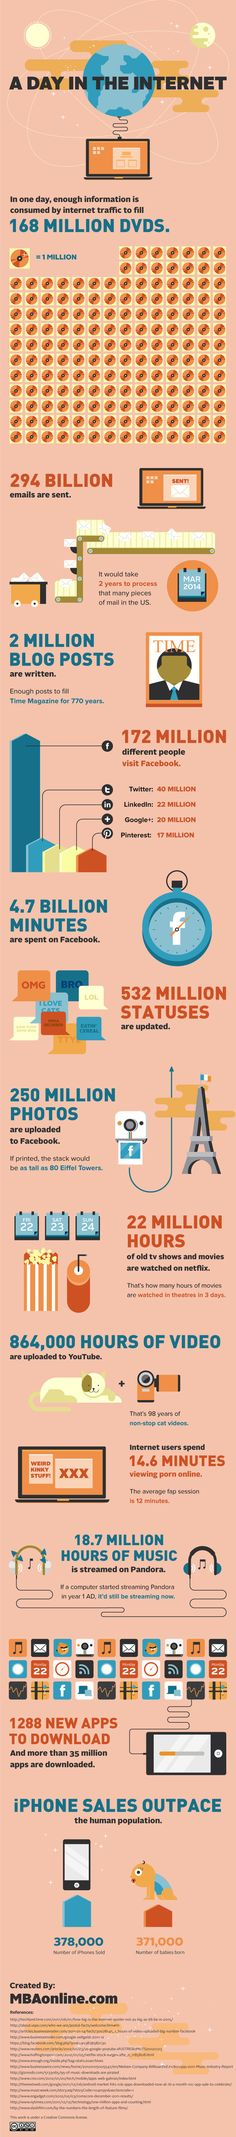 A Day in the Internet #infographic - @kkoolook